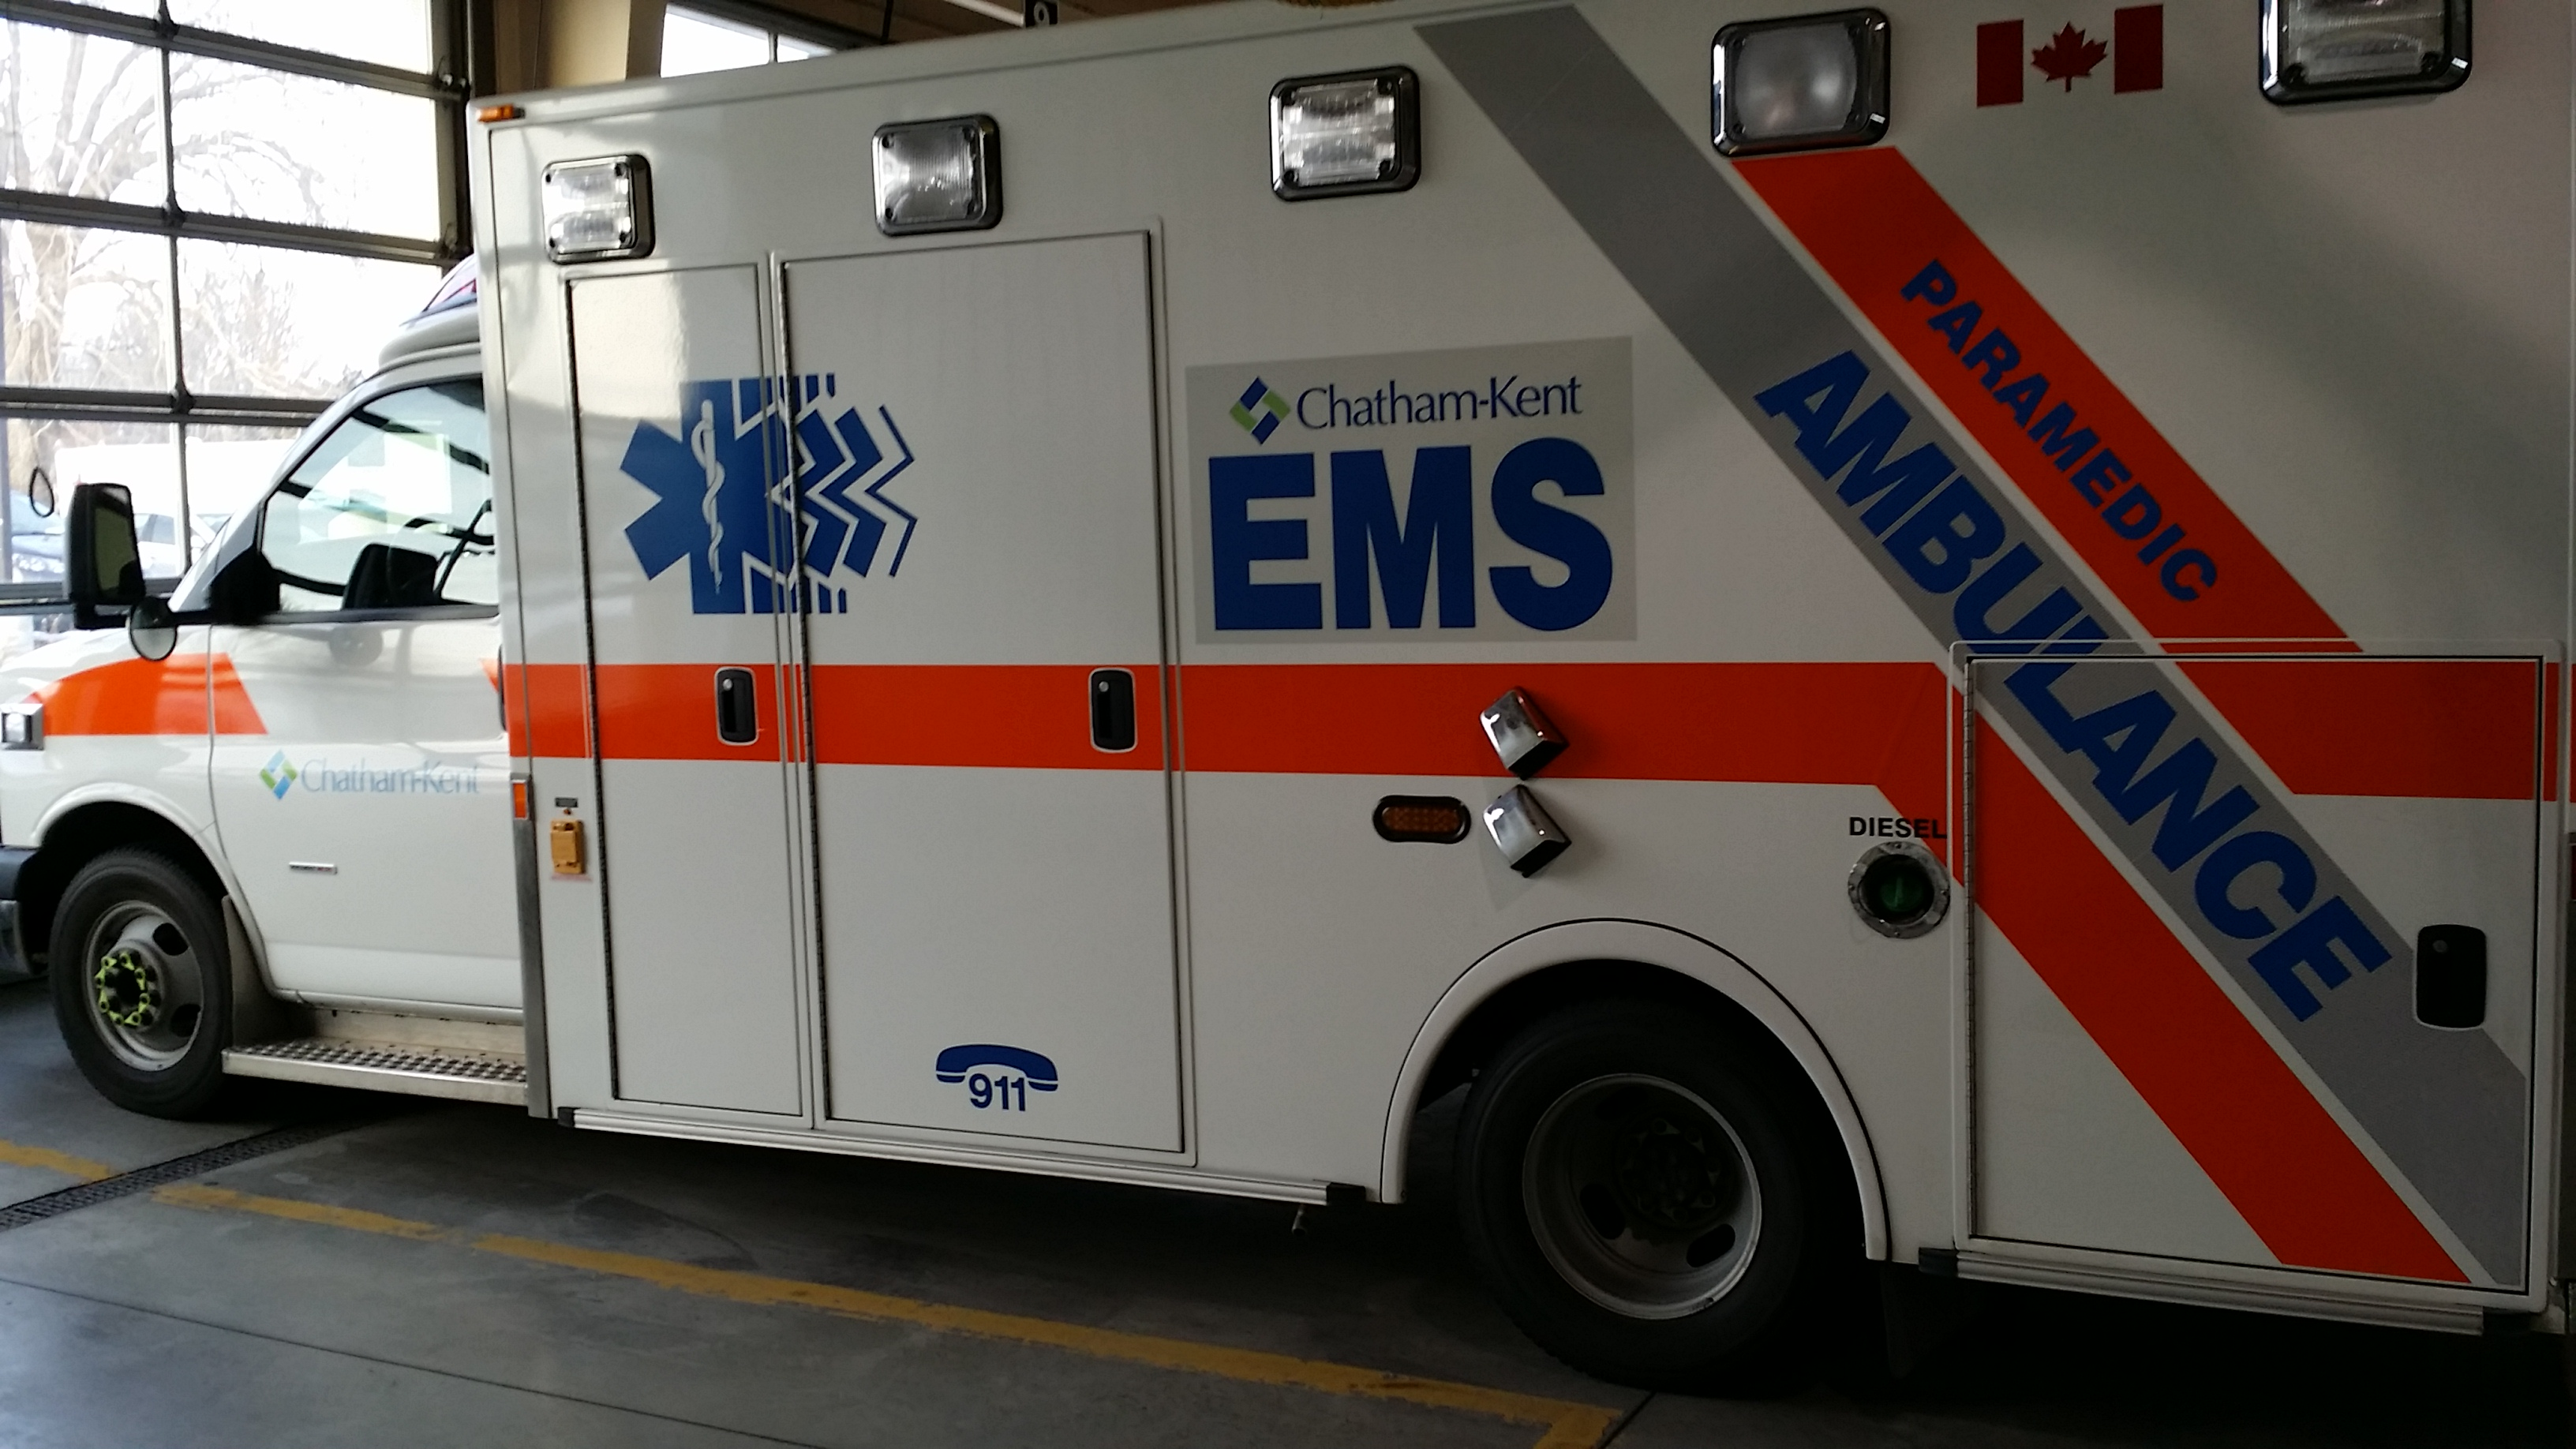 A Chatham-Kent Fire and Emergency Services Ambulance (Photo by Jake Kislinsky)